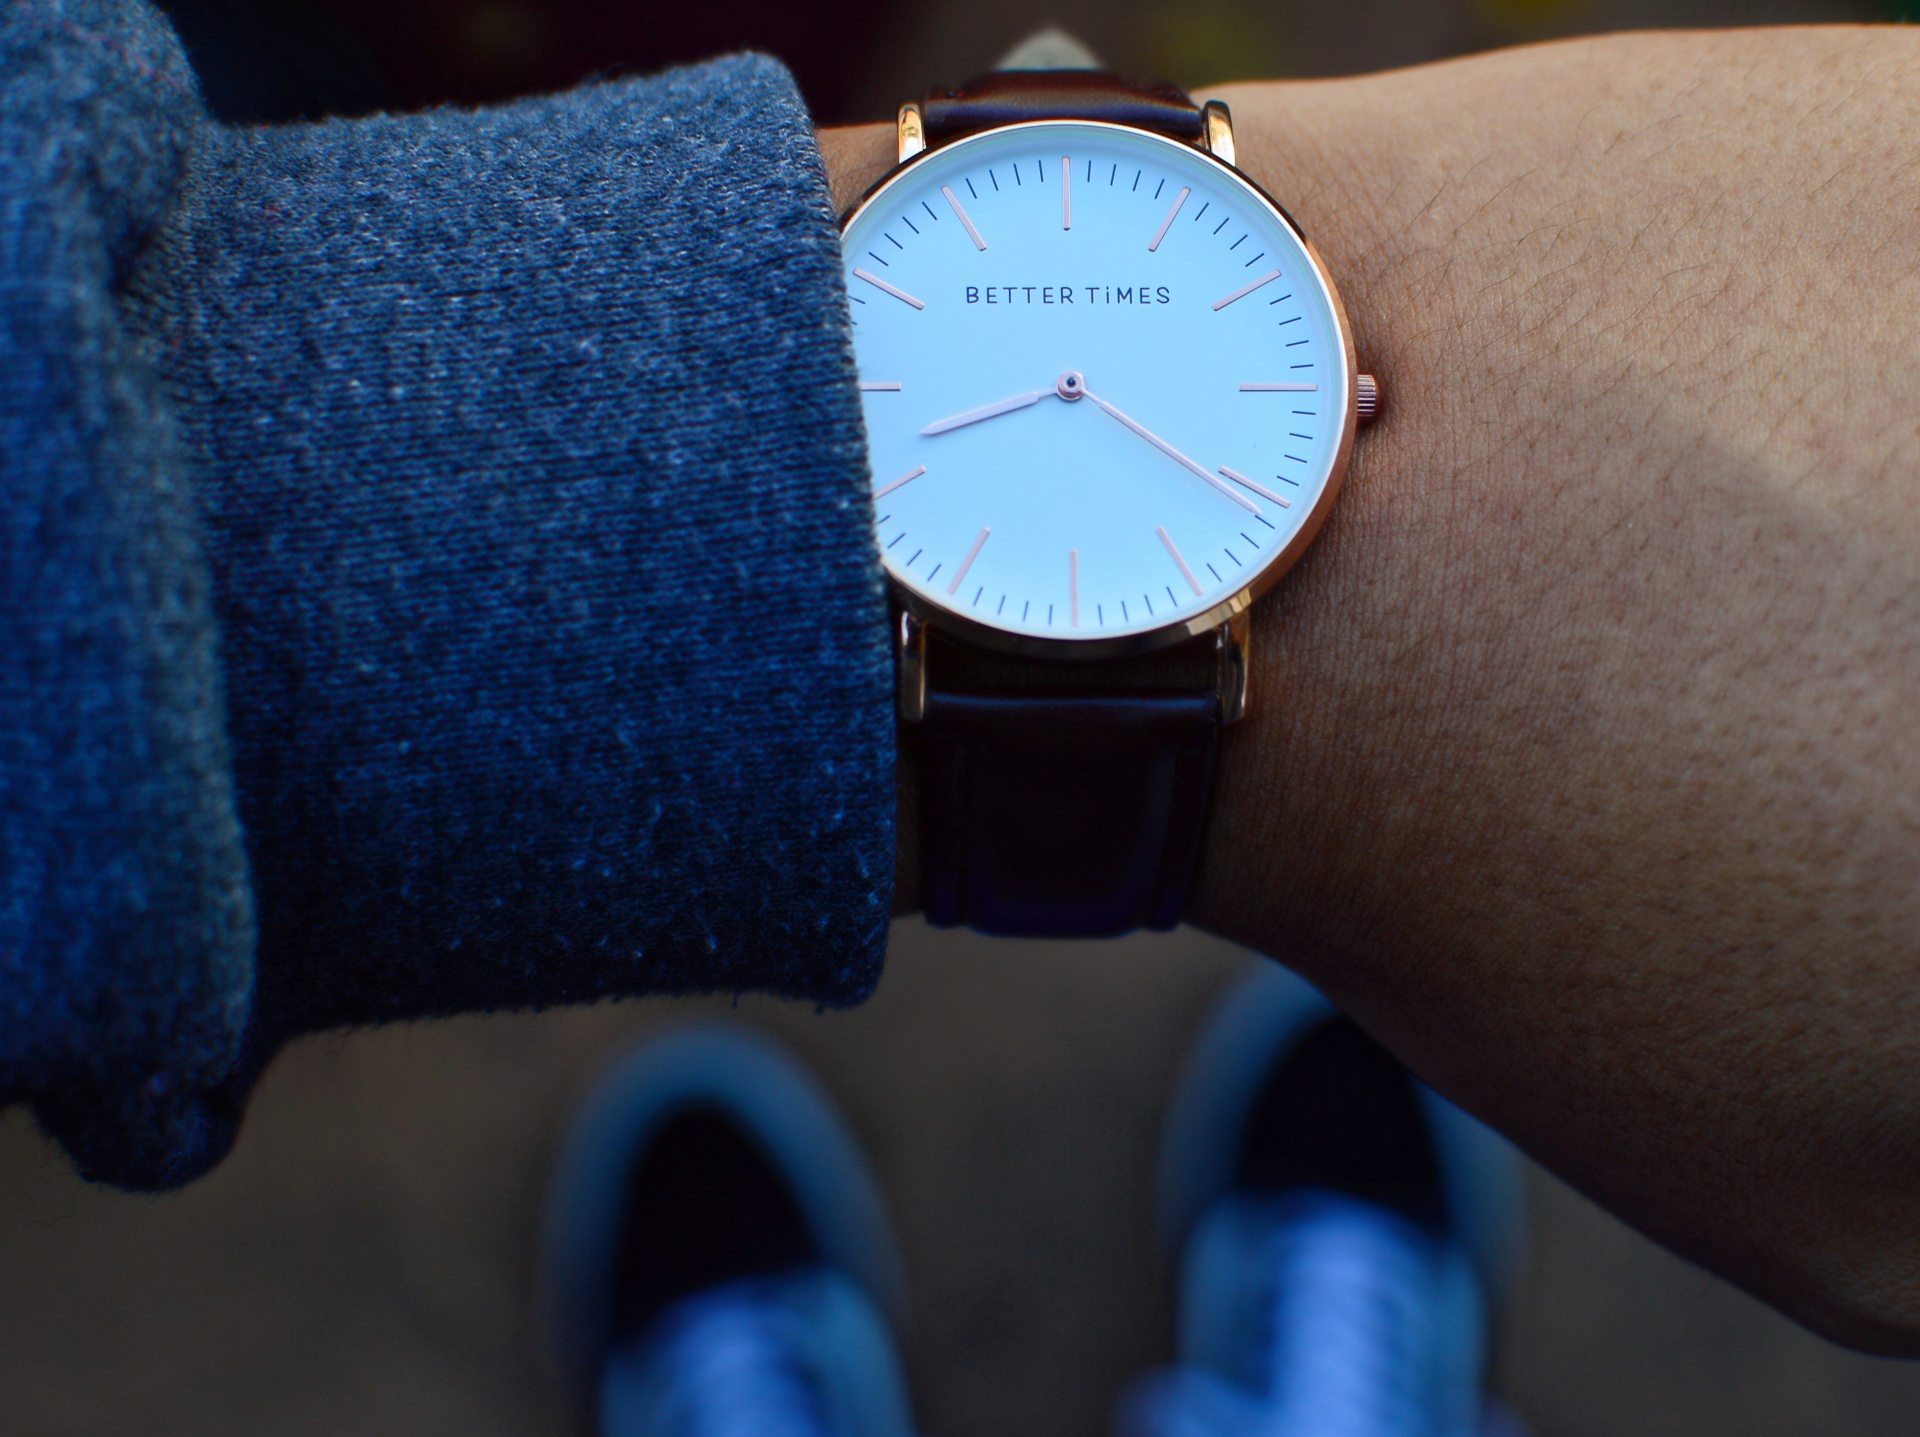 Watch, Time